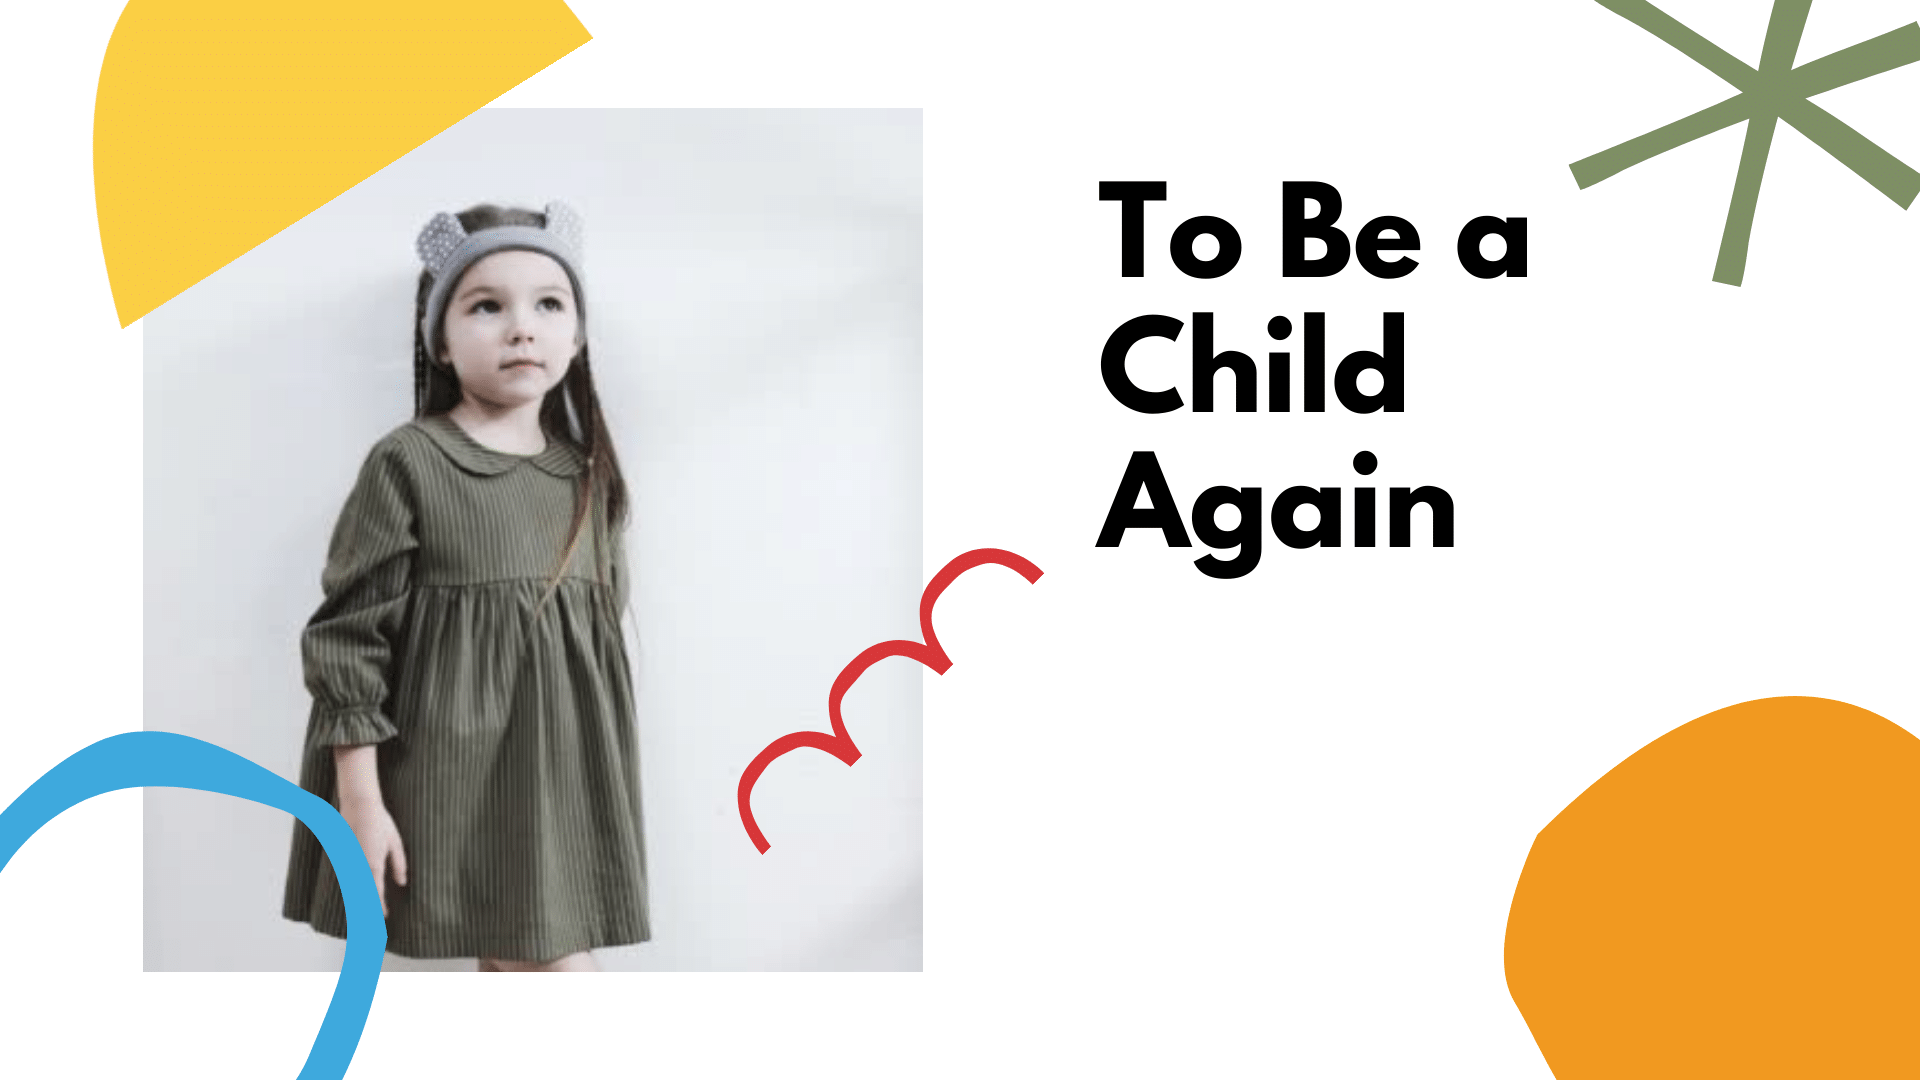 To be a Child again